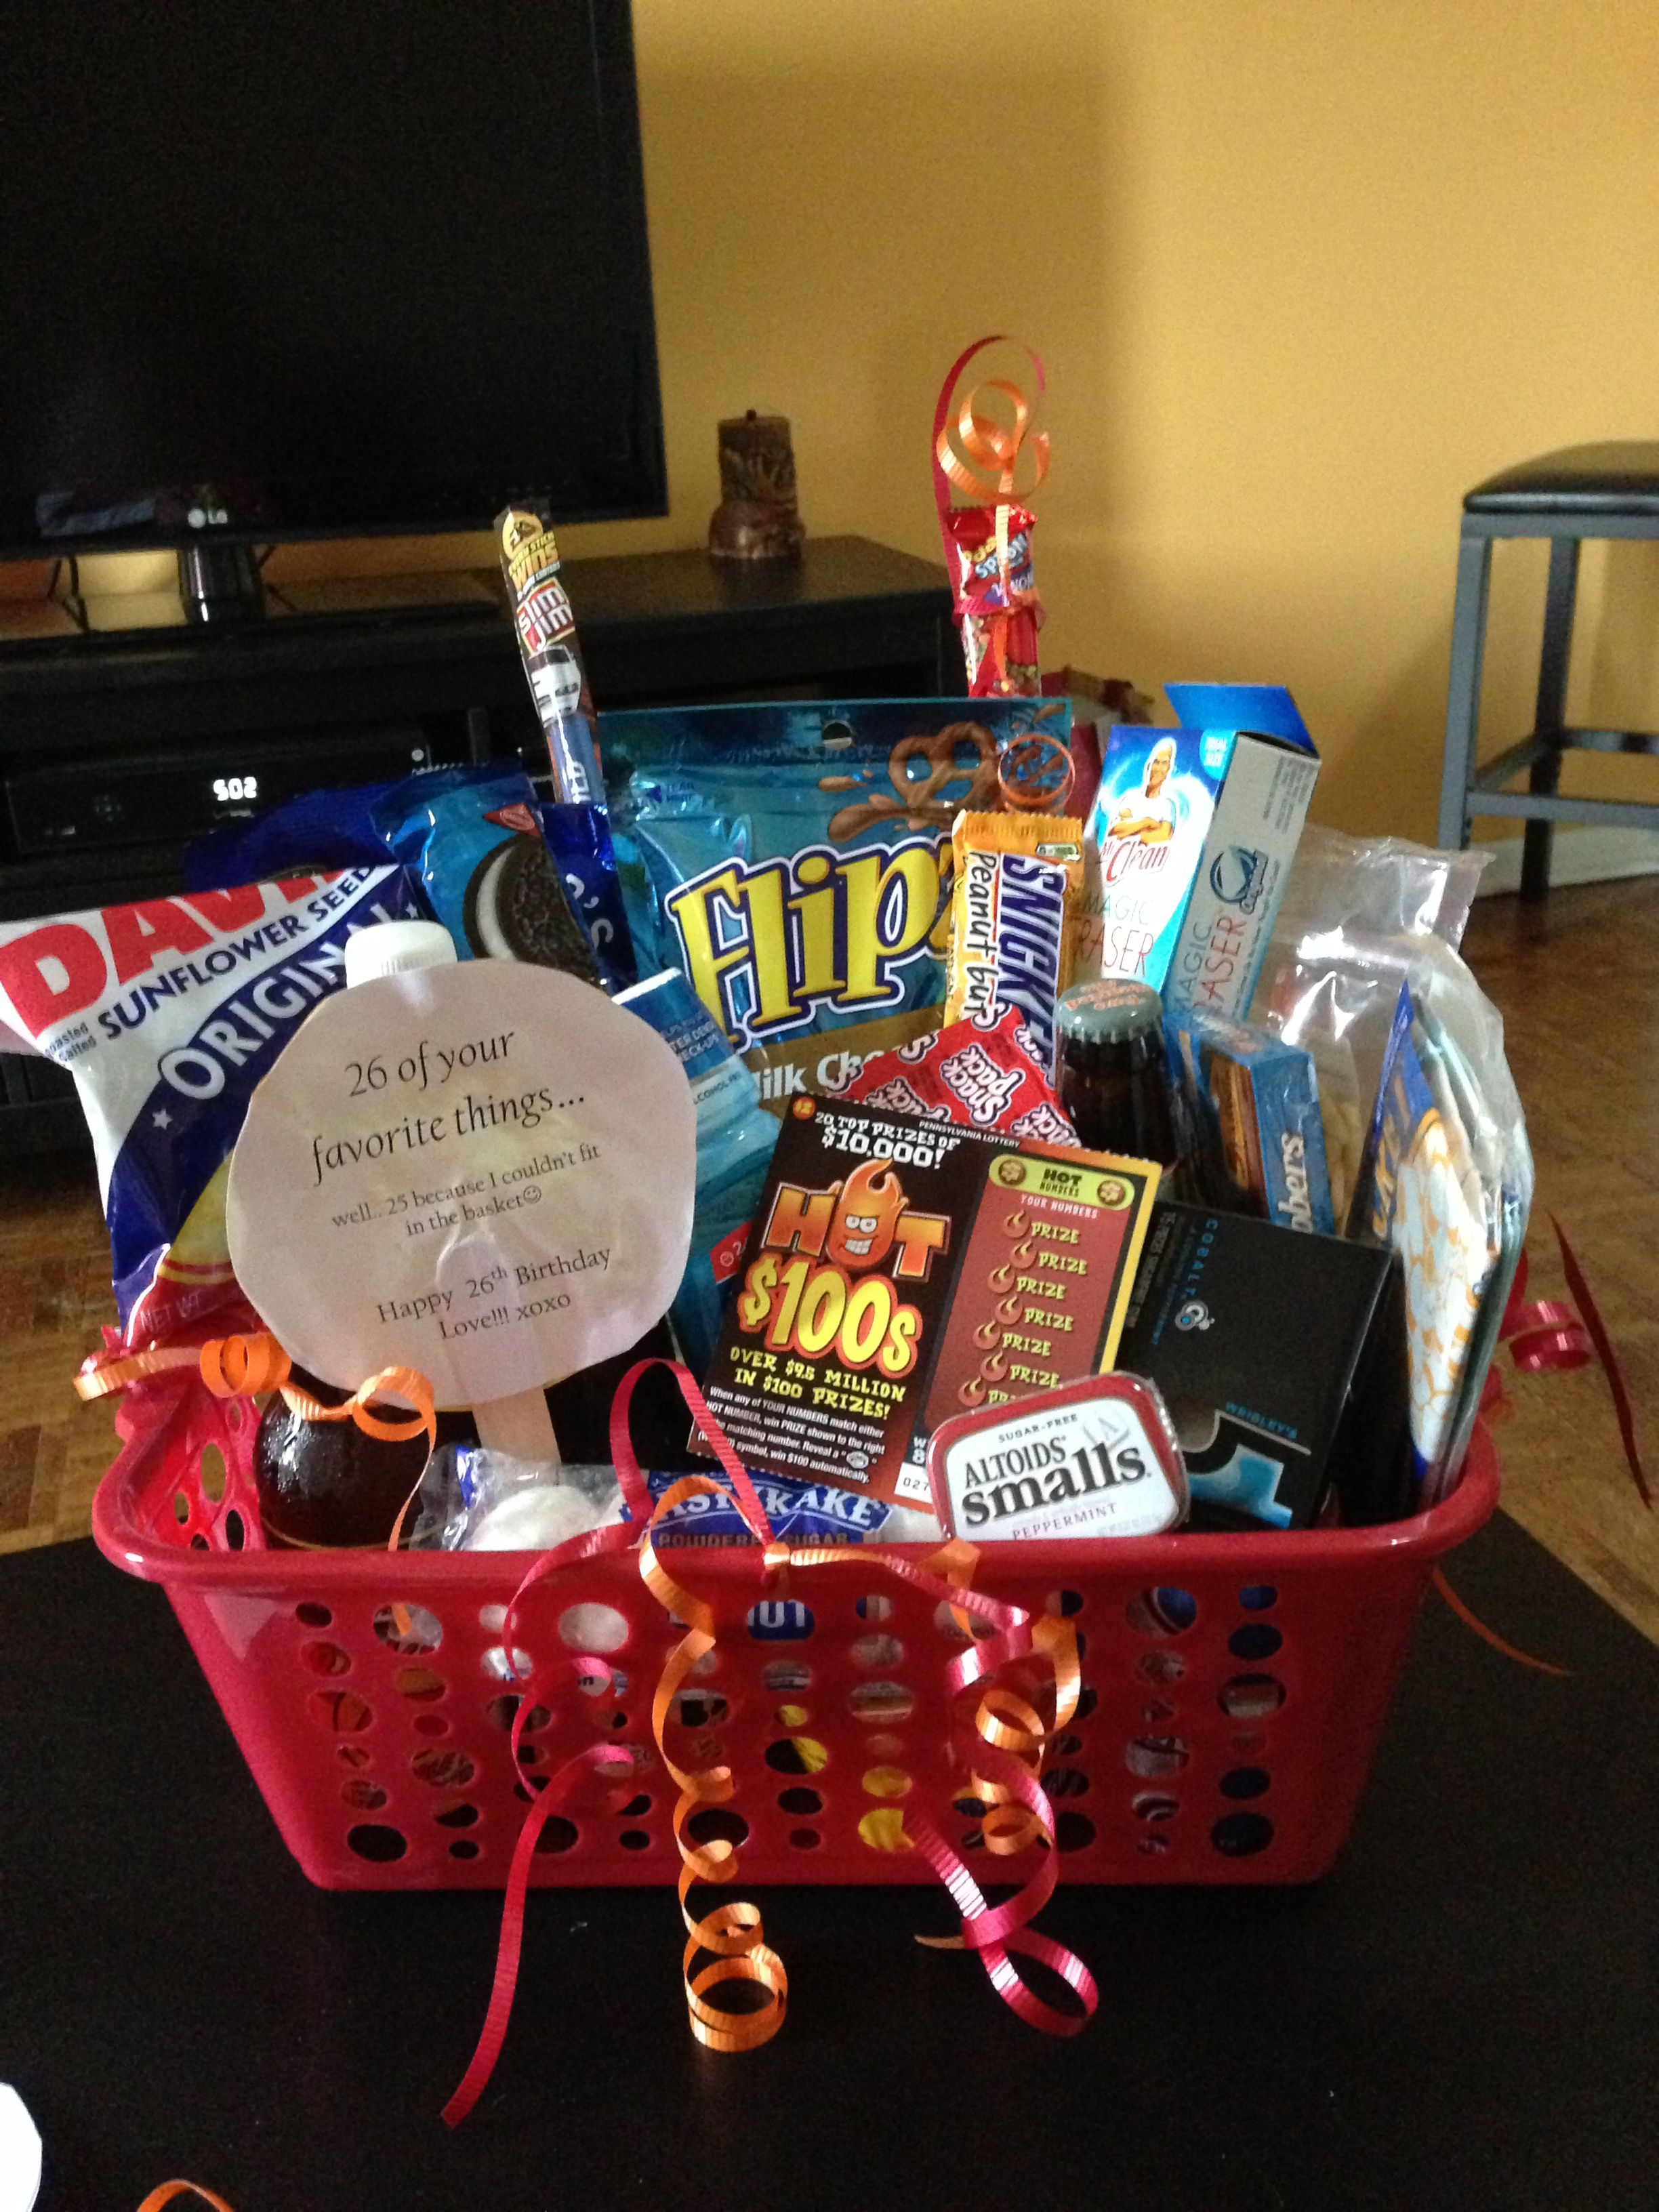 Boyfriend Birthday Basket 26 Of His Favorite Things For 26th